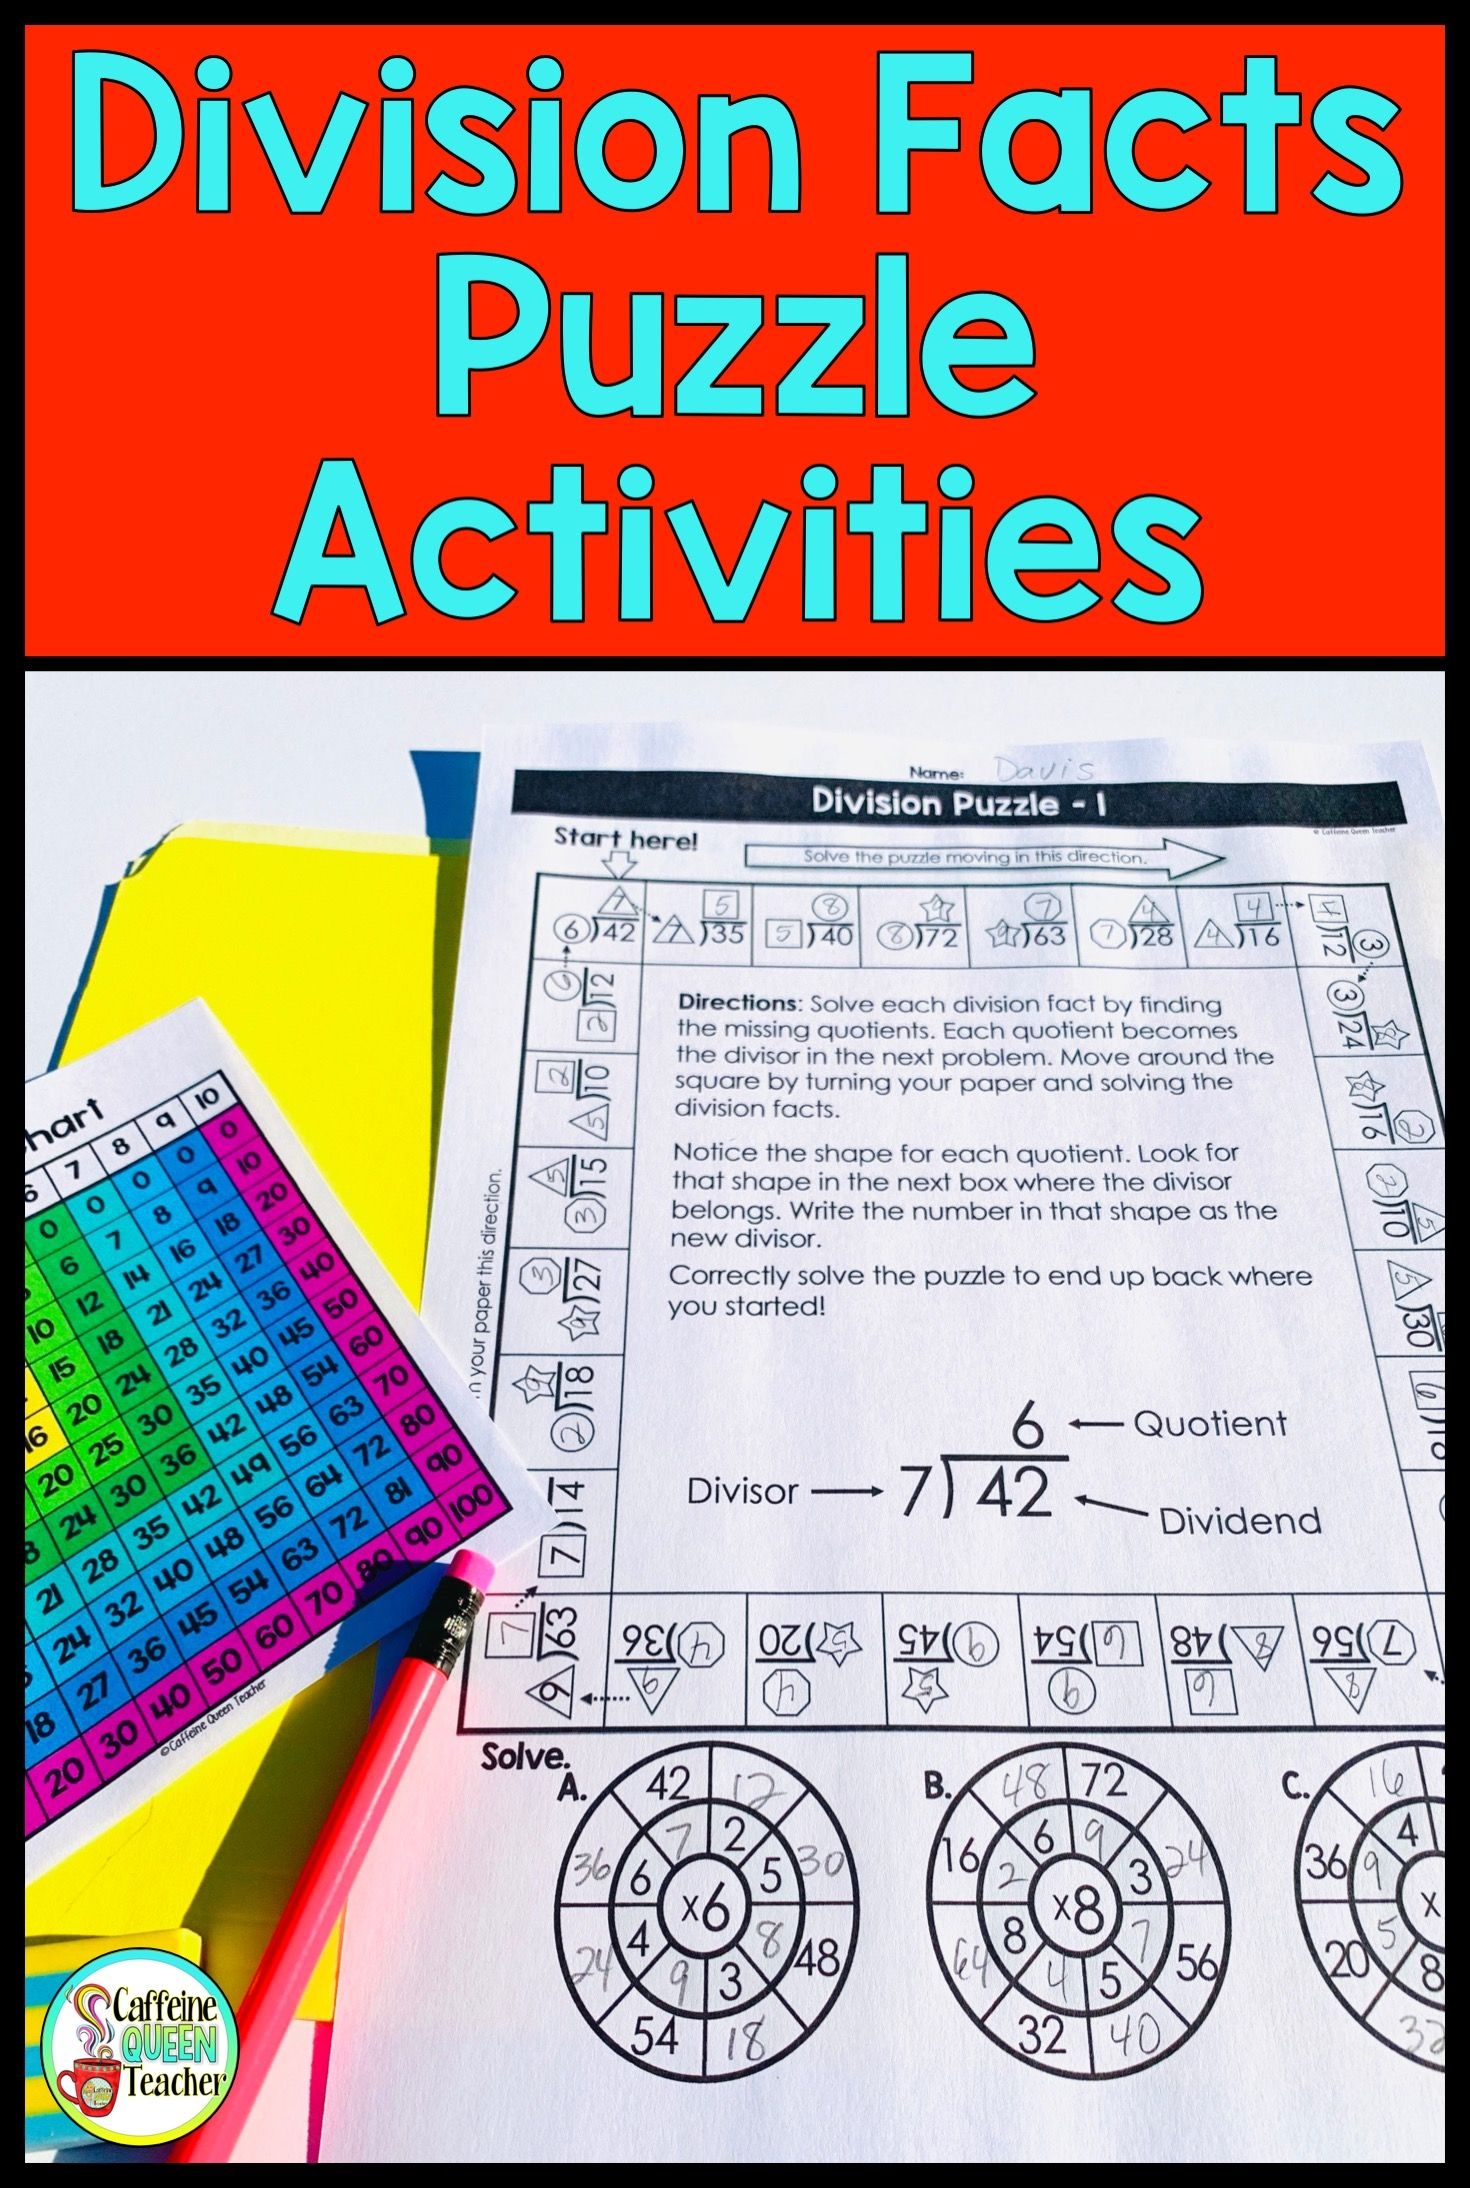 Division Facts Practice Activities